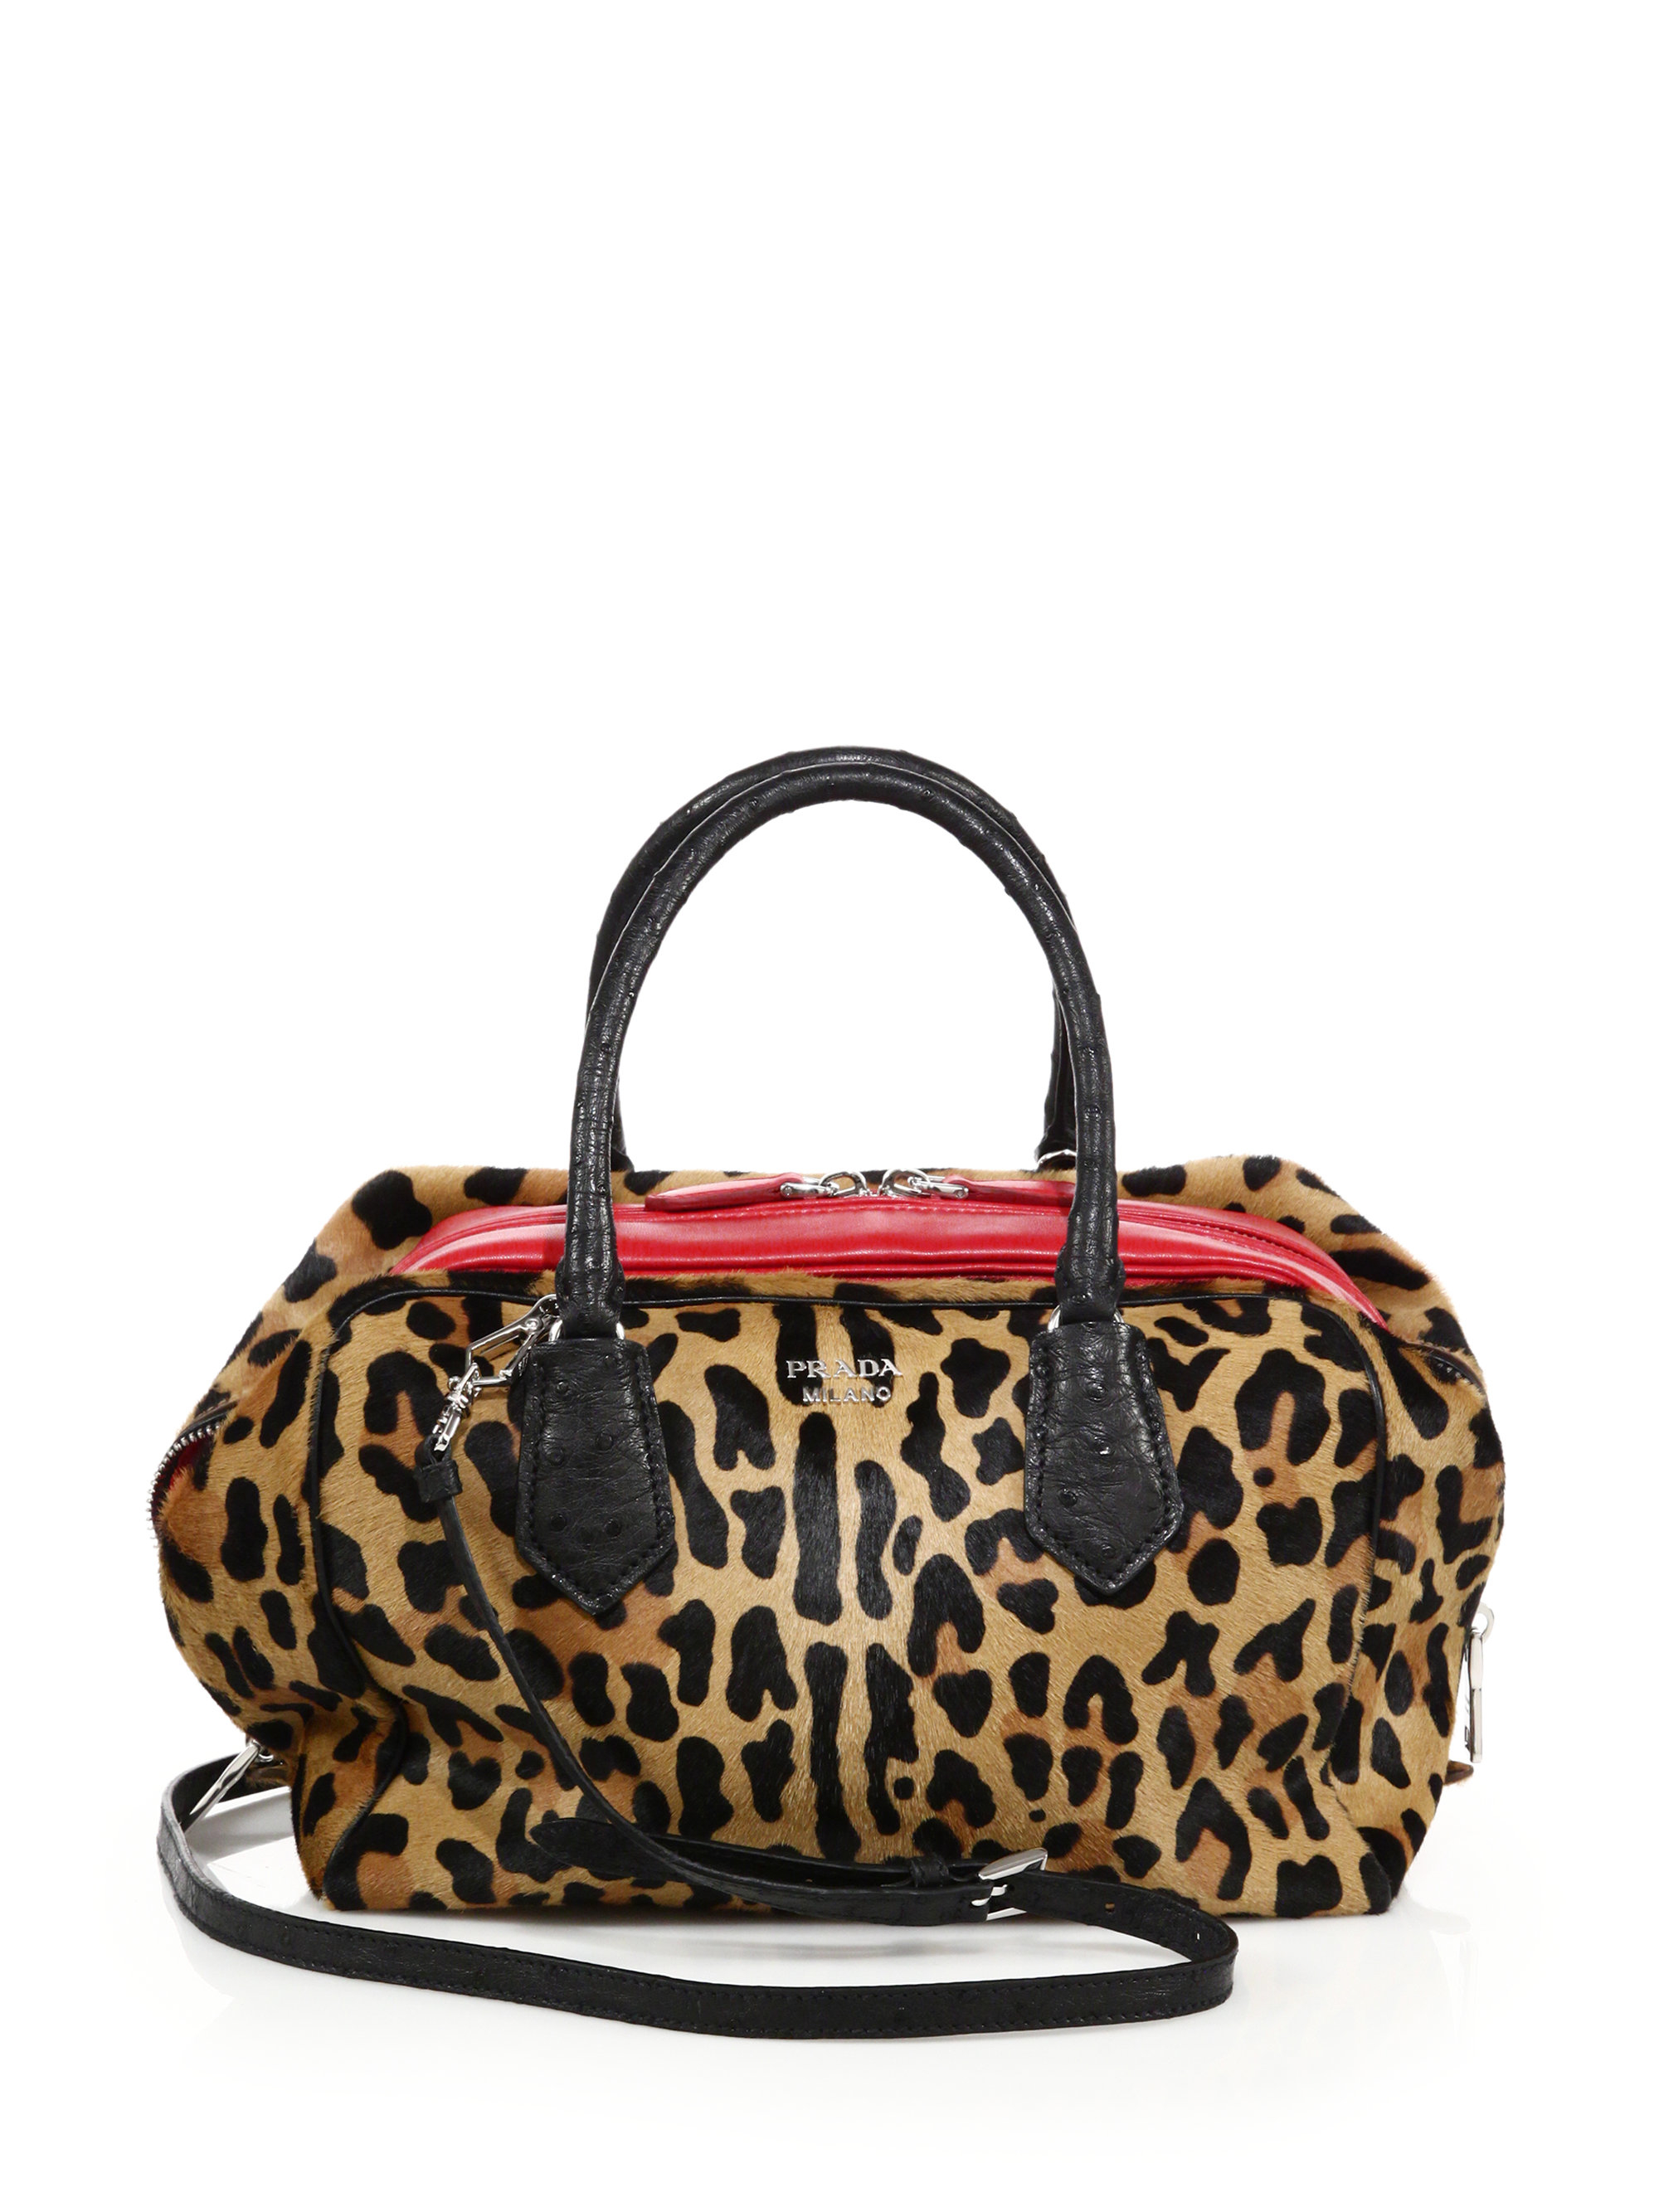 09aaaa6b83c8 Prada Leopard-print Calf Hair, Ostrich & Leather Inside Bag - Lyst